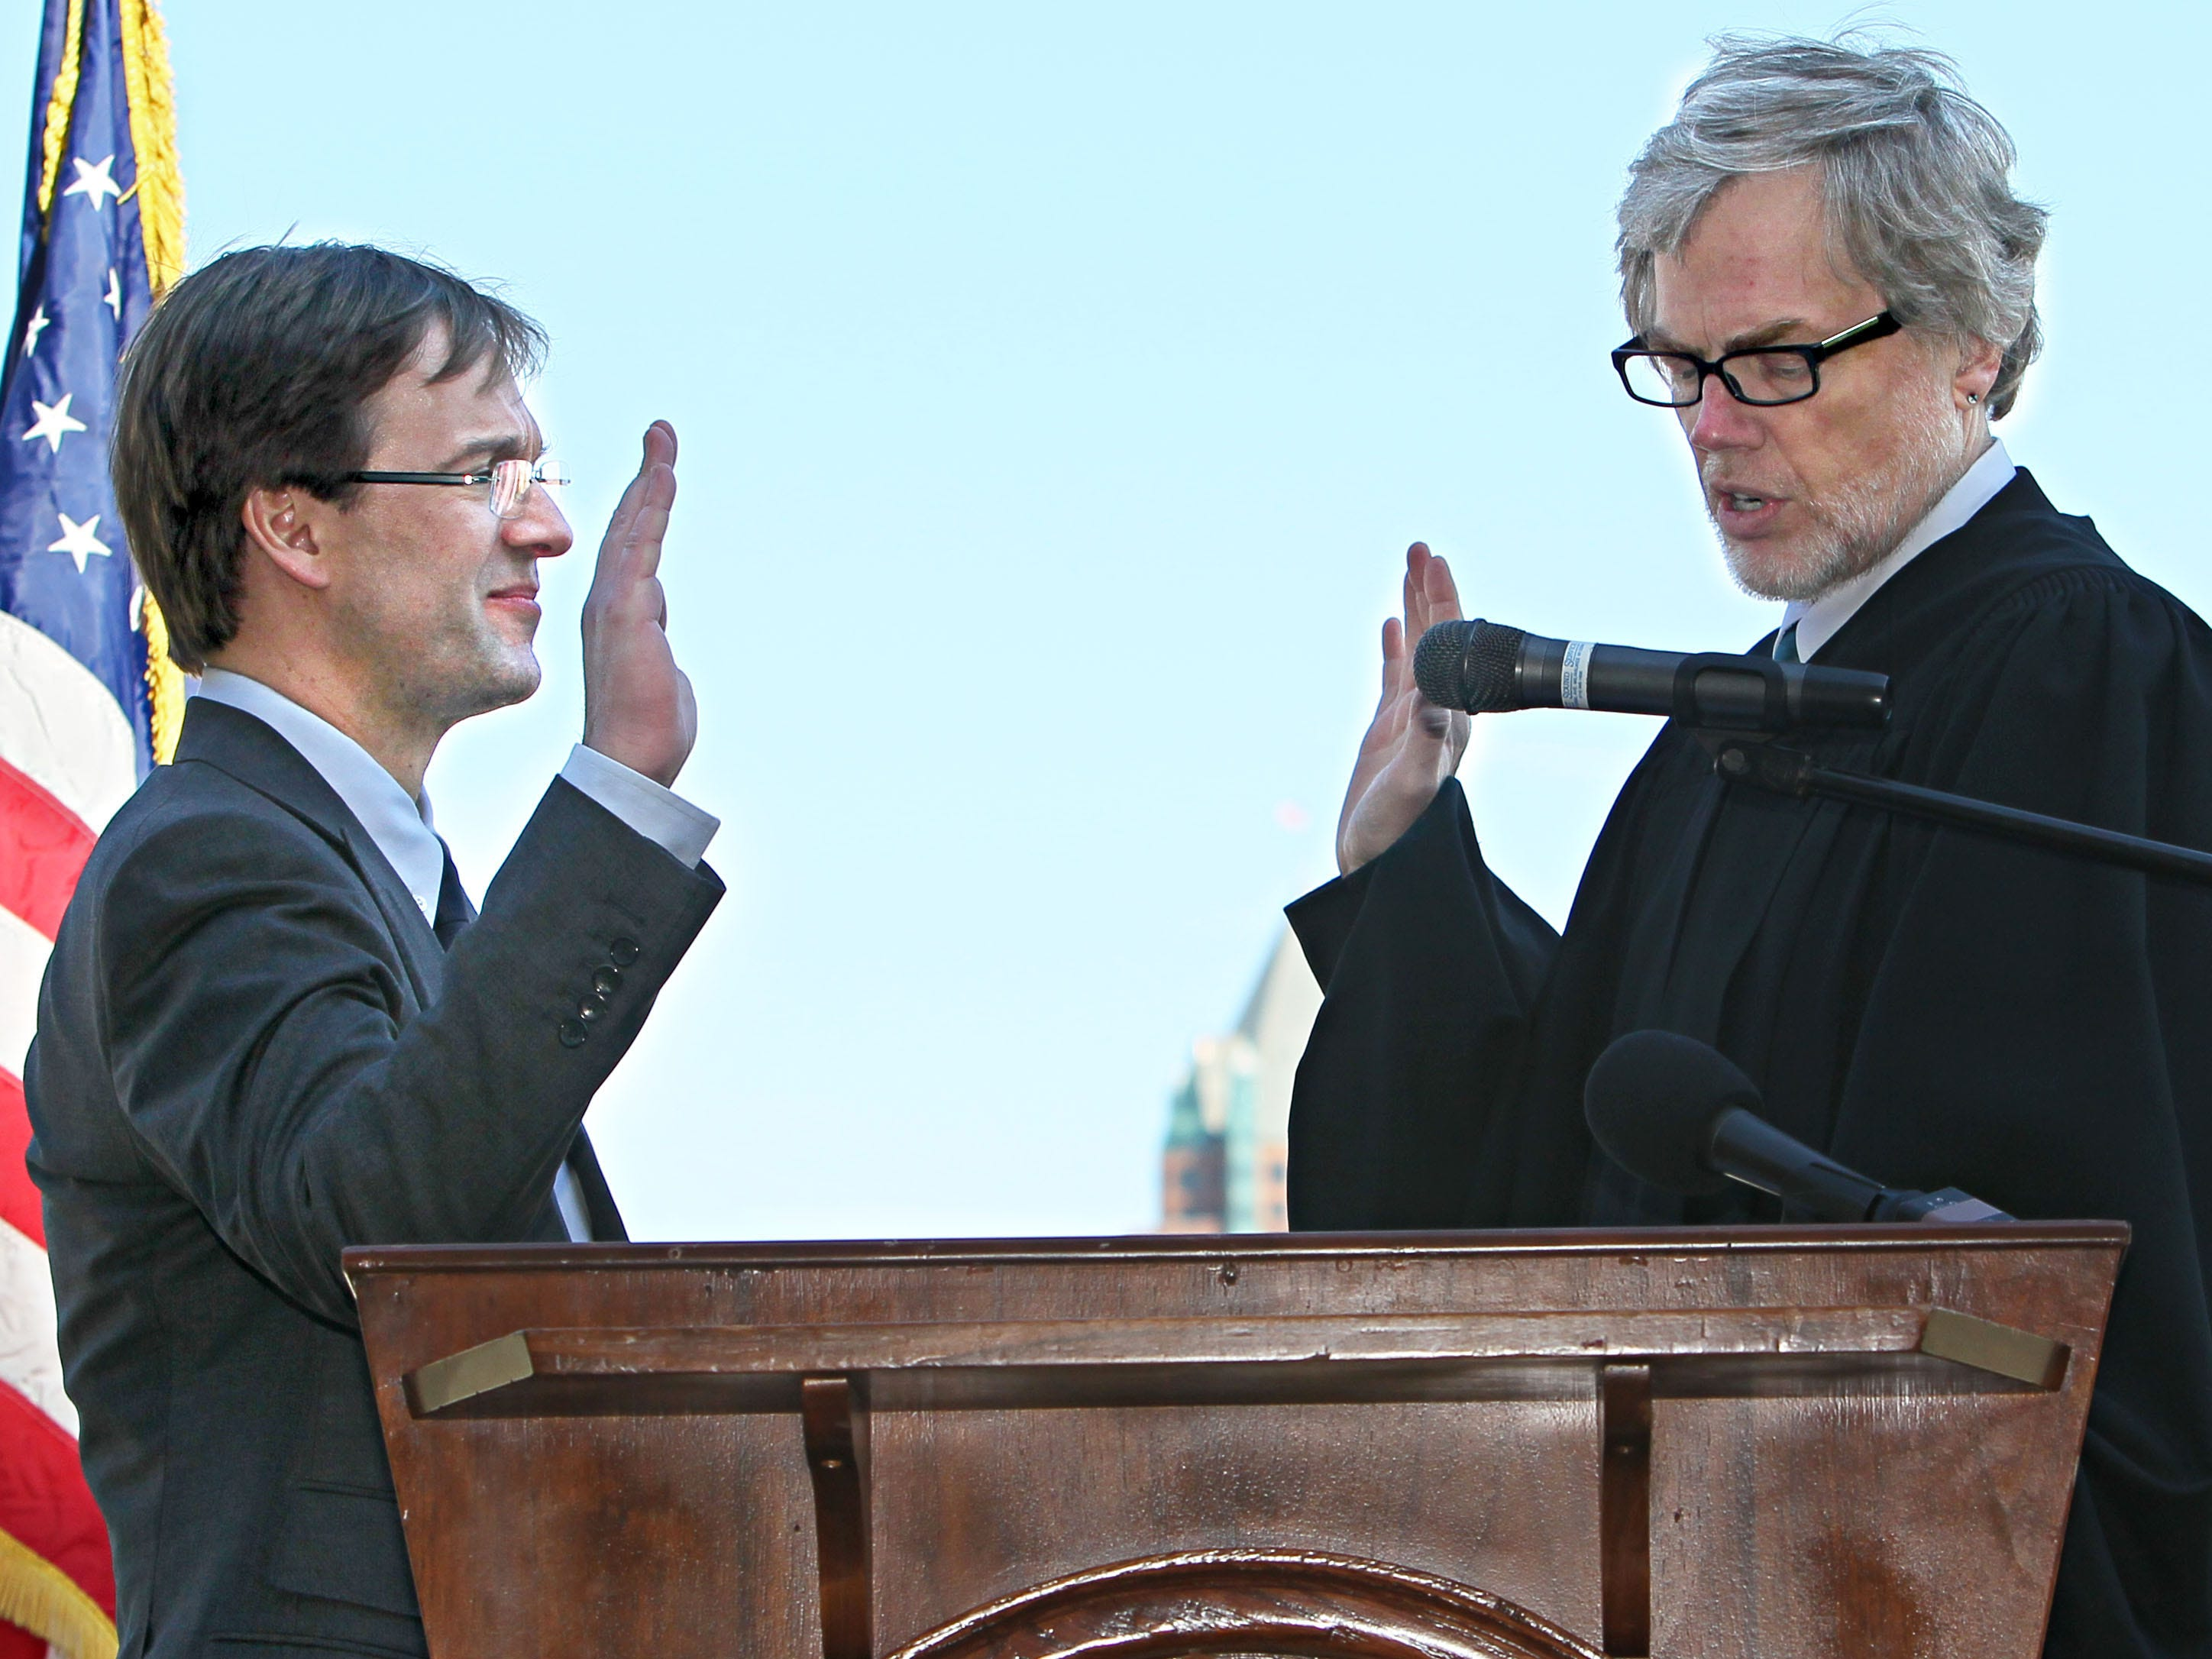 2012: Milwaukee County Executive Chris Abele is sworn in by Milwaukee County Chief Judge Jeffrey A. Kremers (right).  The ceremony was held in MacArthur Square.